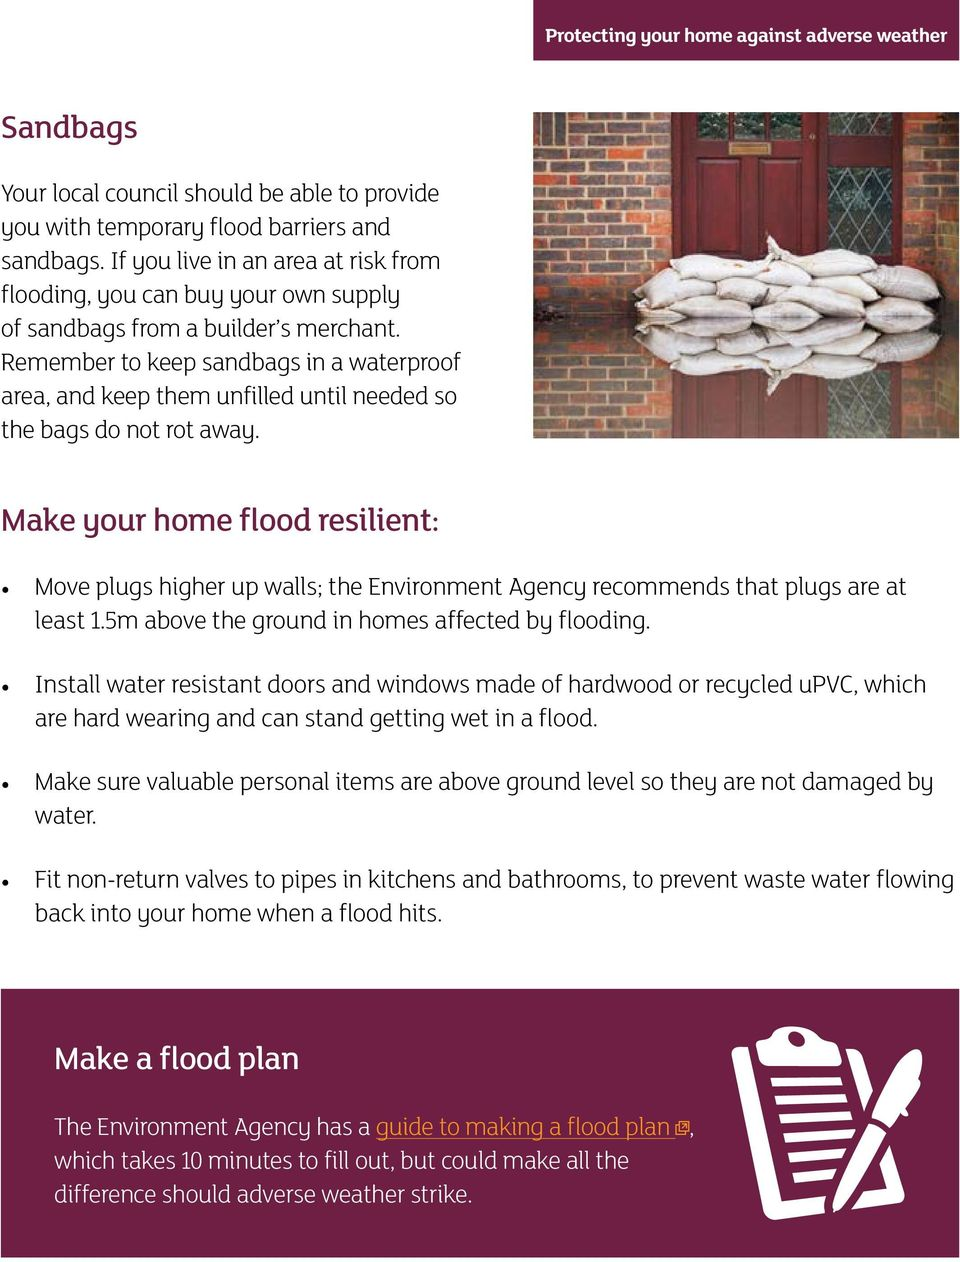 Remember to keep sandbags in a waterproof area, and keep them unfilled until needed so the bags do not rot away.